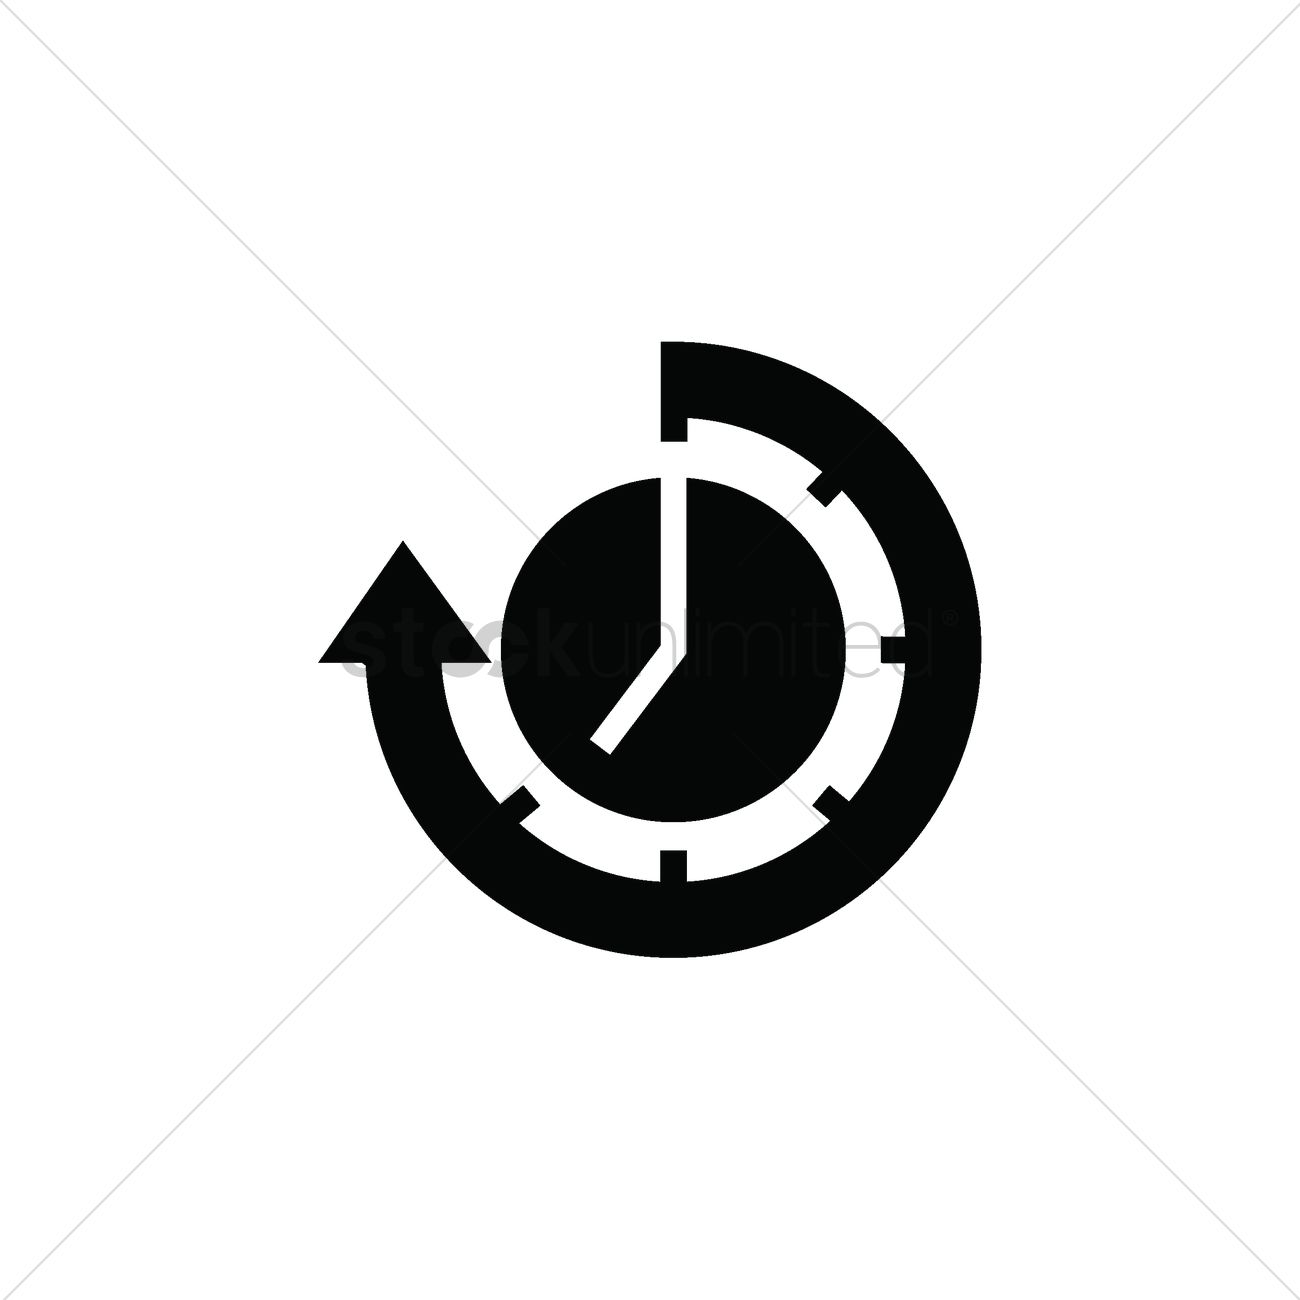 Icon vector image stockunlimited. Clock with arrow clipart